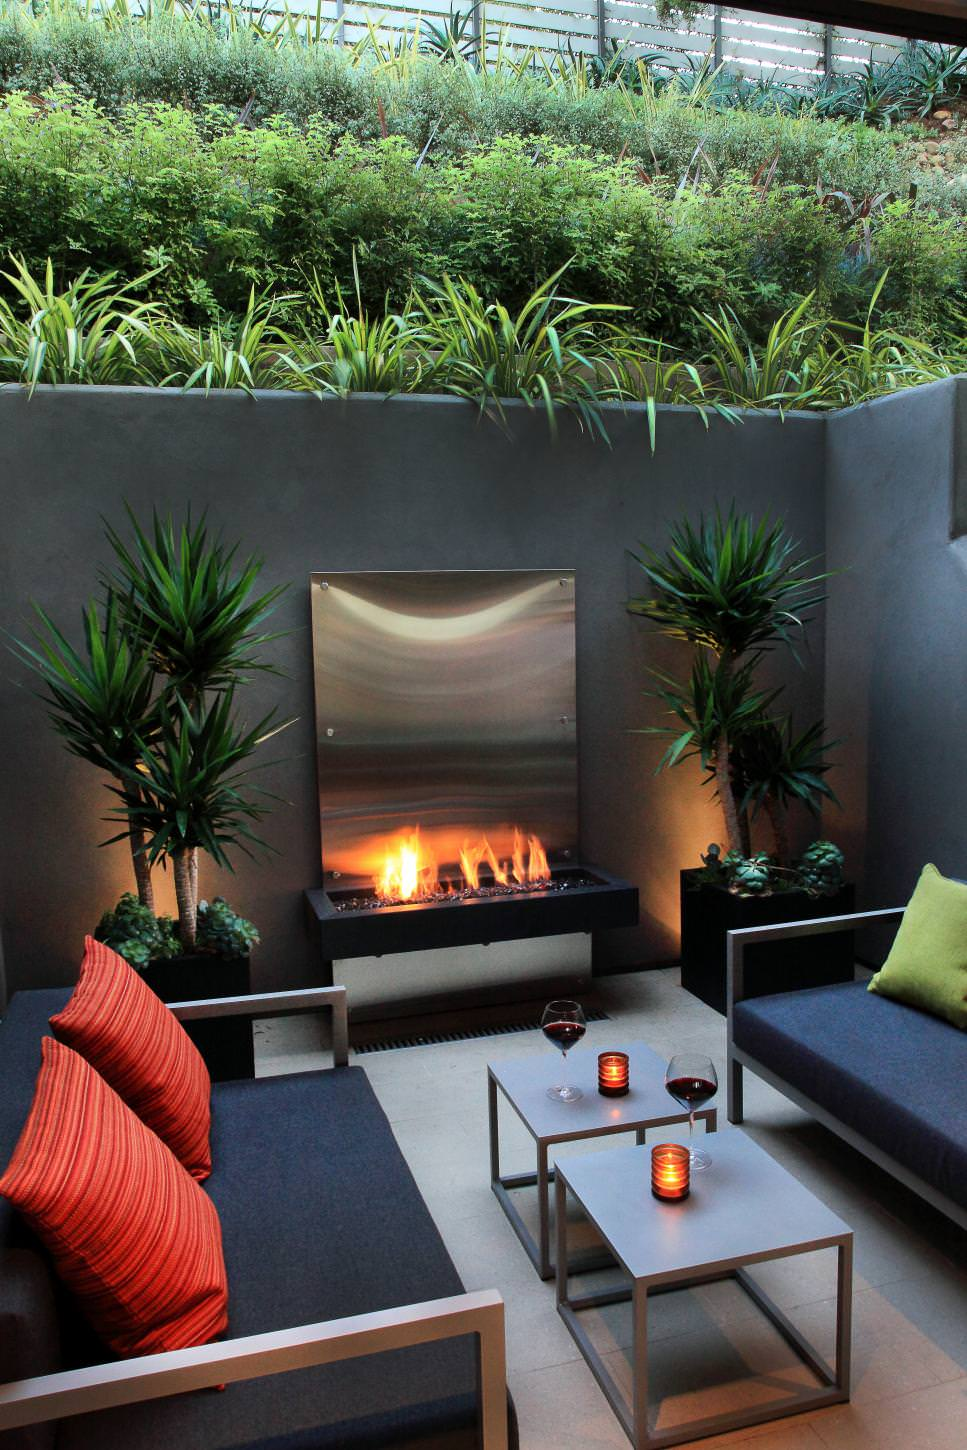 23 concrete wall designs decor ideas design trends for Outdoor patio small spaces